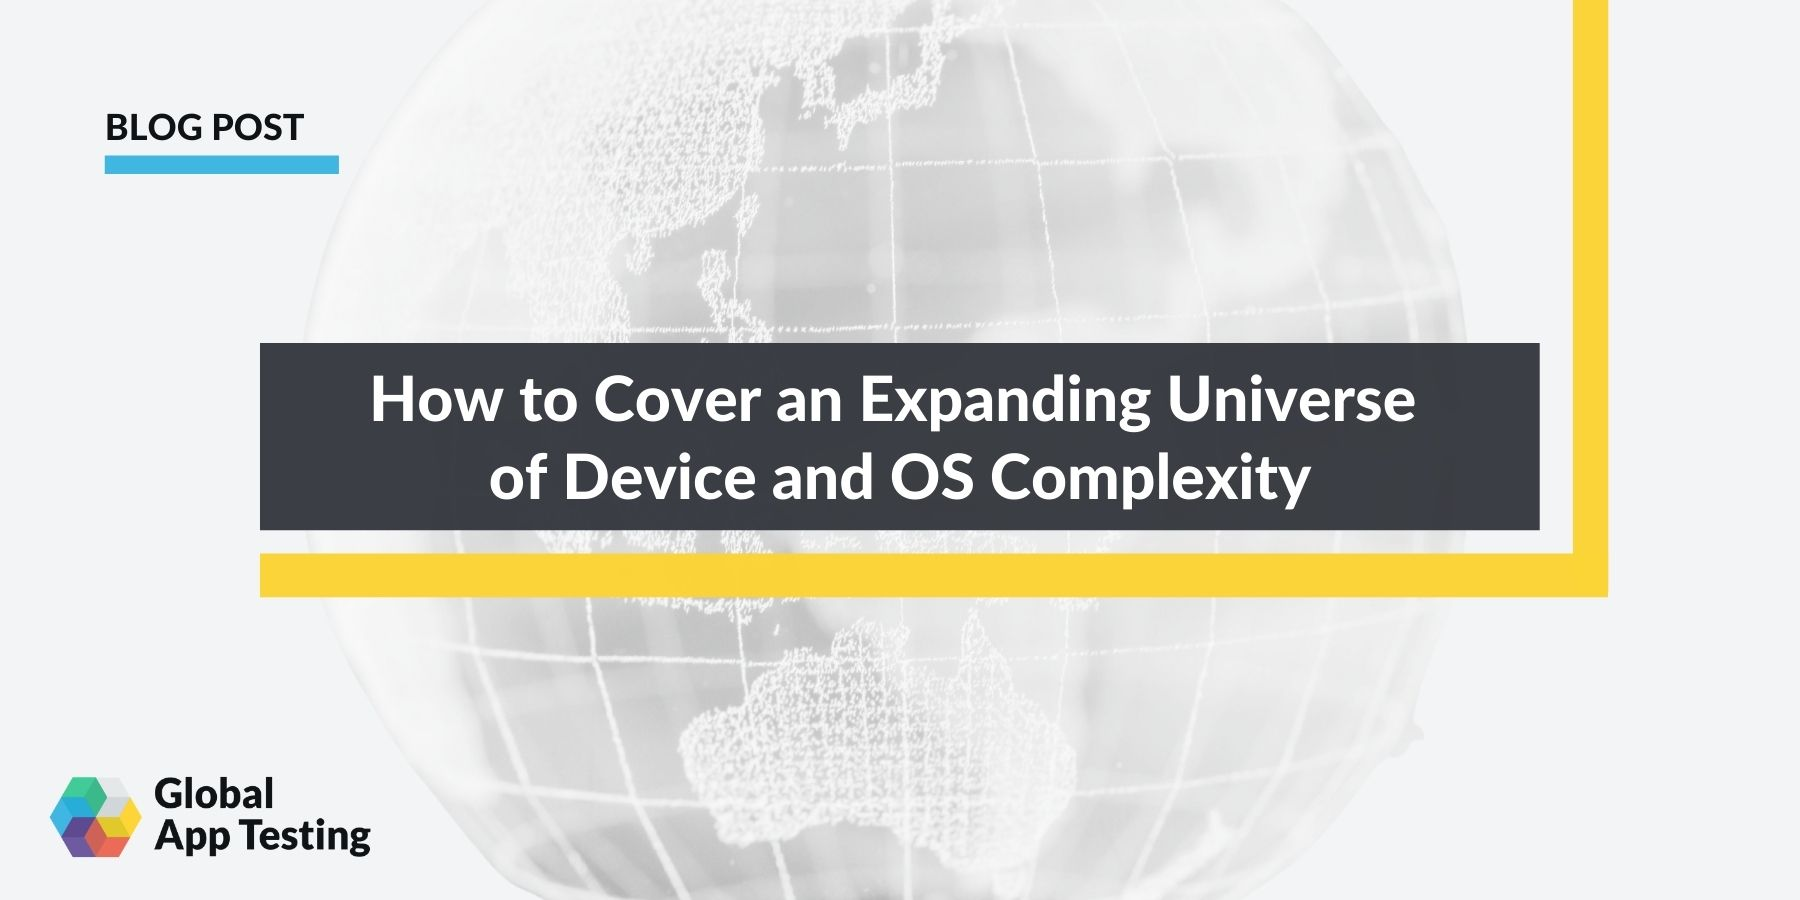 How to Cover an Expanding Universe of Device and OS complexity